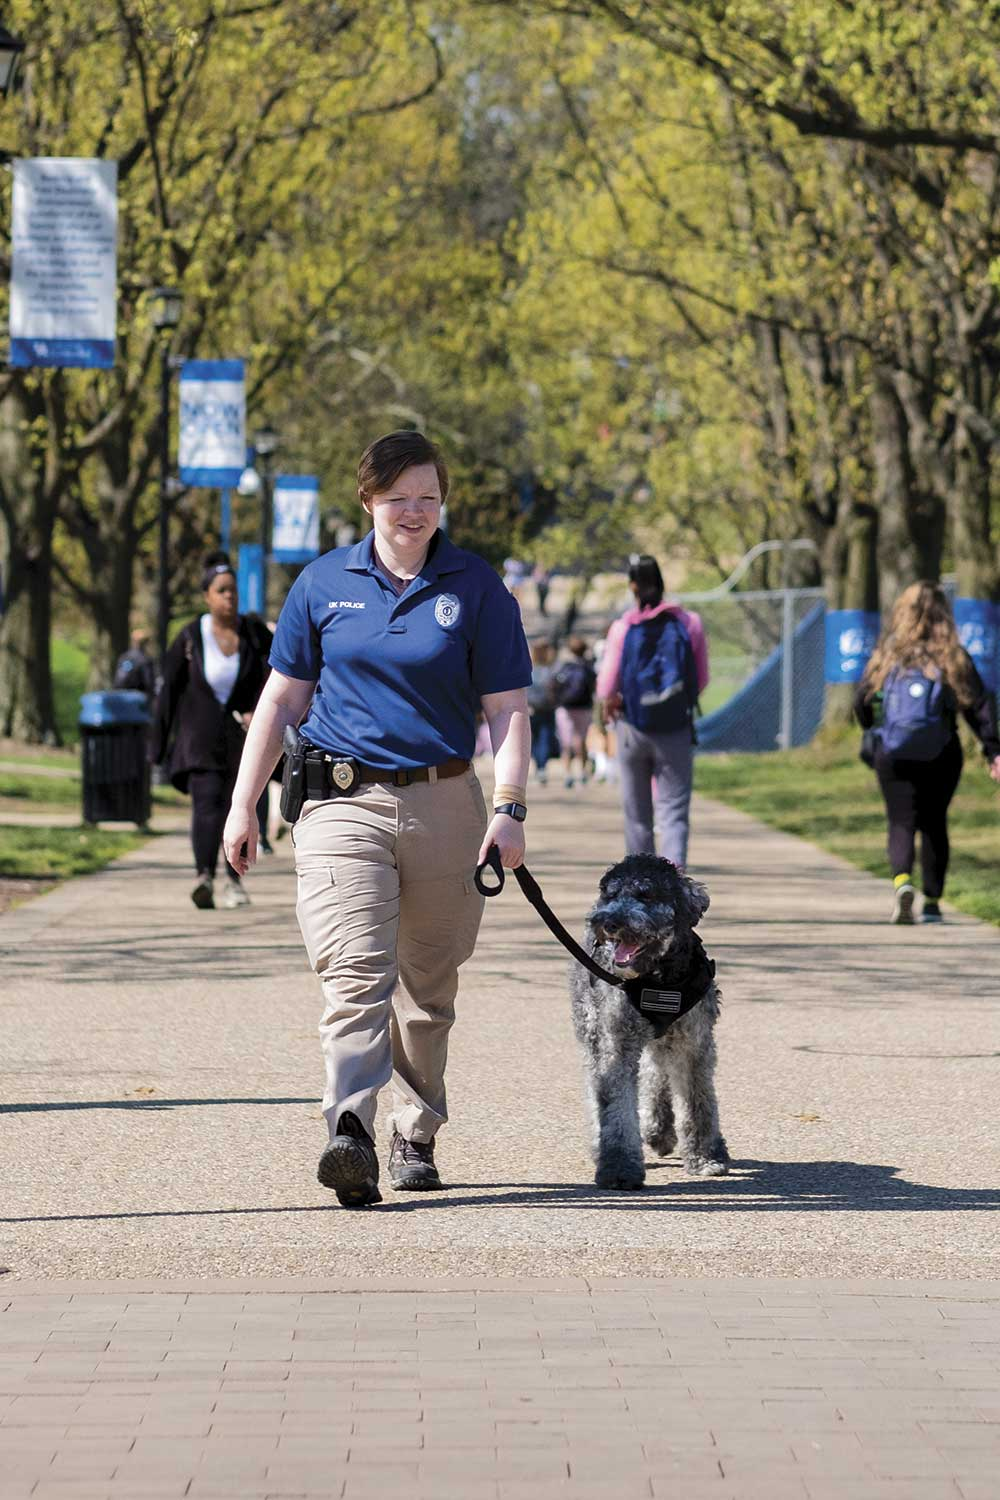 University of Kentucky Police Officer Amy Boatman and UKPD therapy dog Oliver are often seen in and around campus. In early May, Boatman and Oliver walked down a sidewalk near Wildcat Alumni Plaza. (Photo by Jim Robertson)